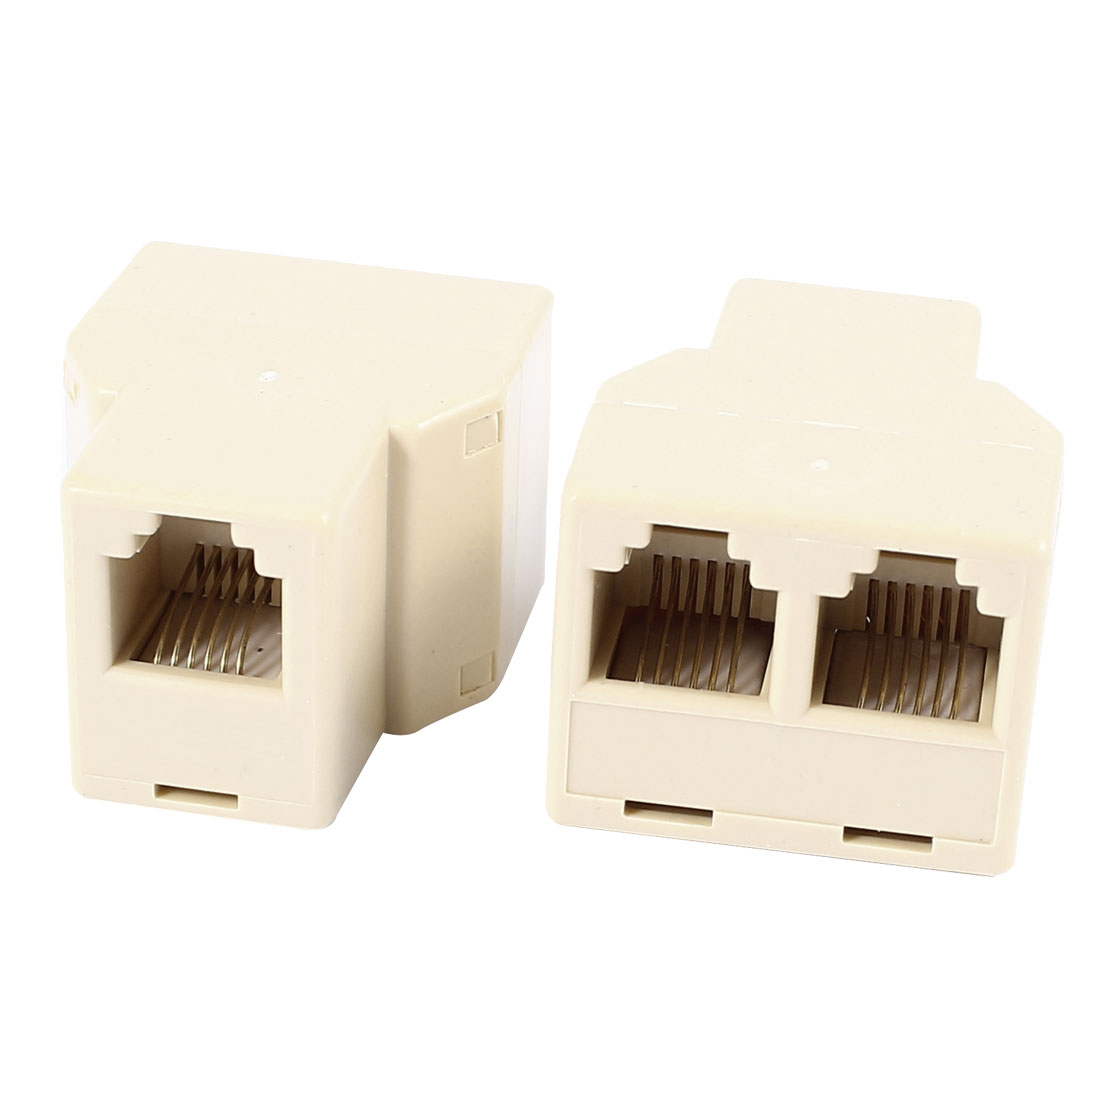 2 Pcs RJ11 6P6C Female to 2 Female Socket Connector Telephone Modular Splitter Adapter Yellow